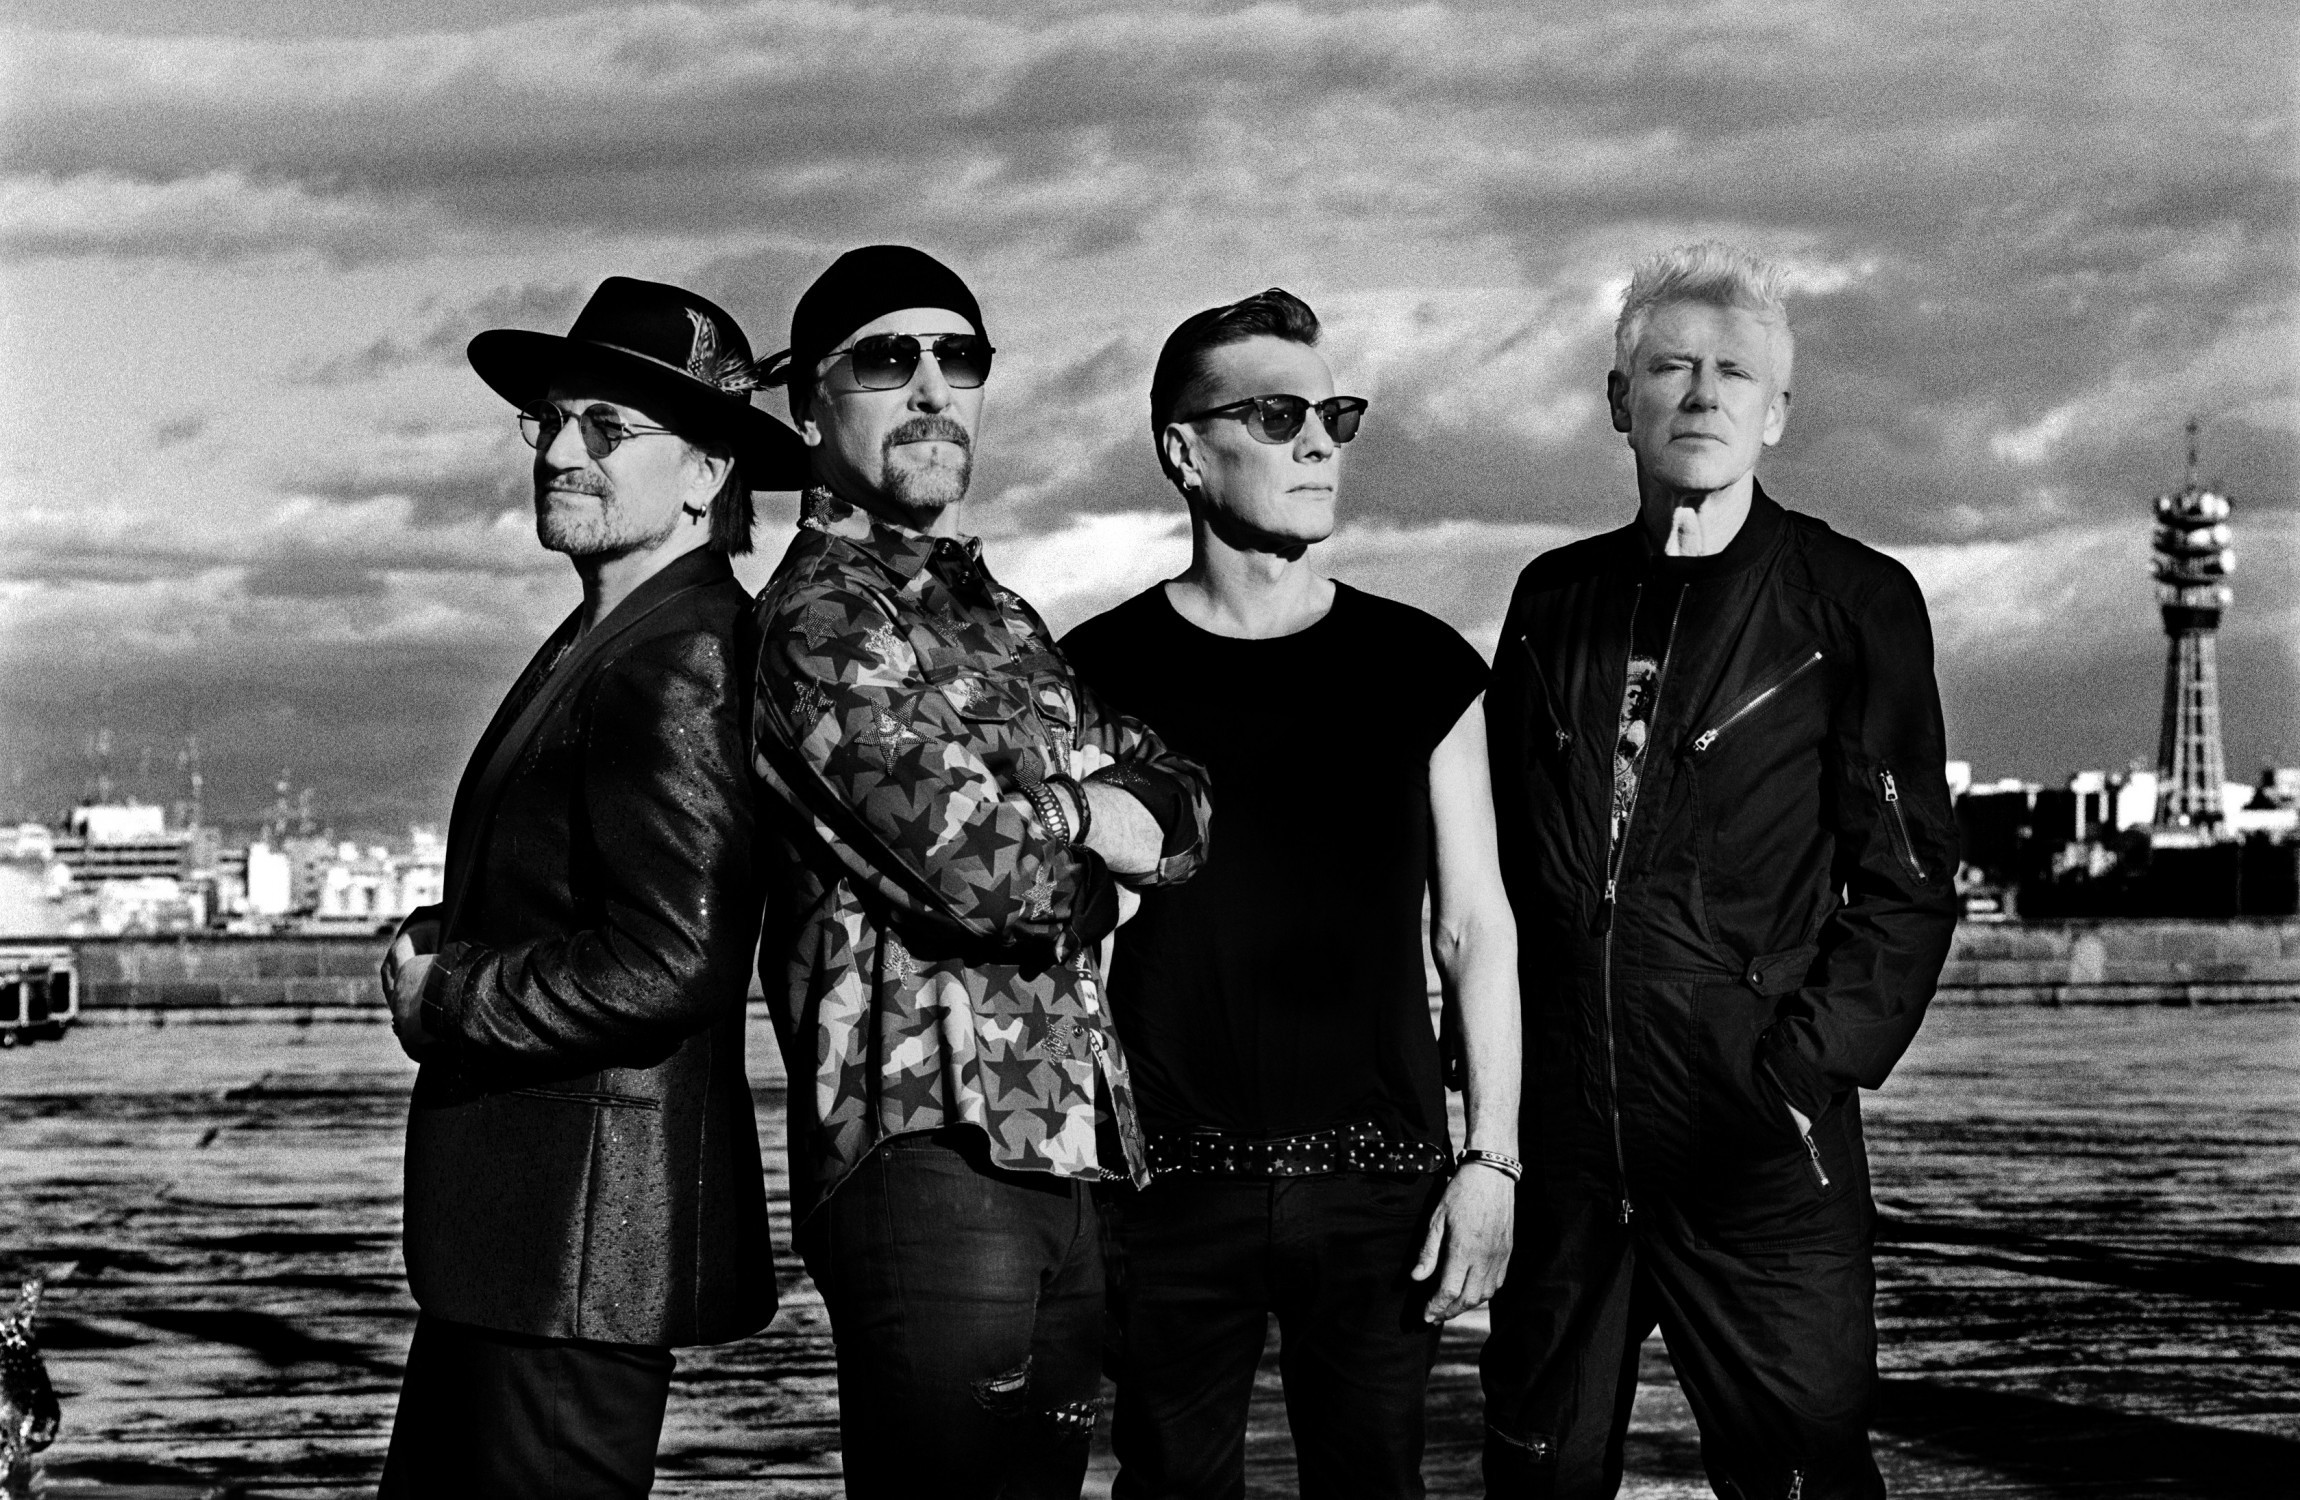 U2 confirm they will bring their 2018 tour to Dublin and Belfast